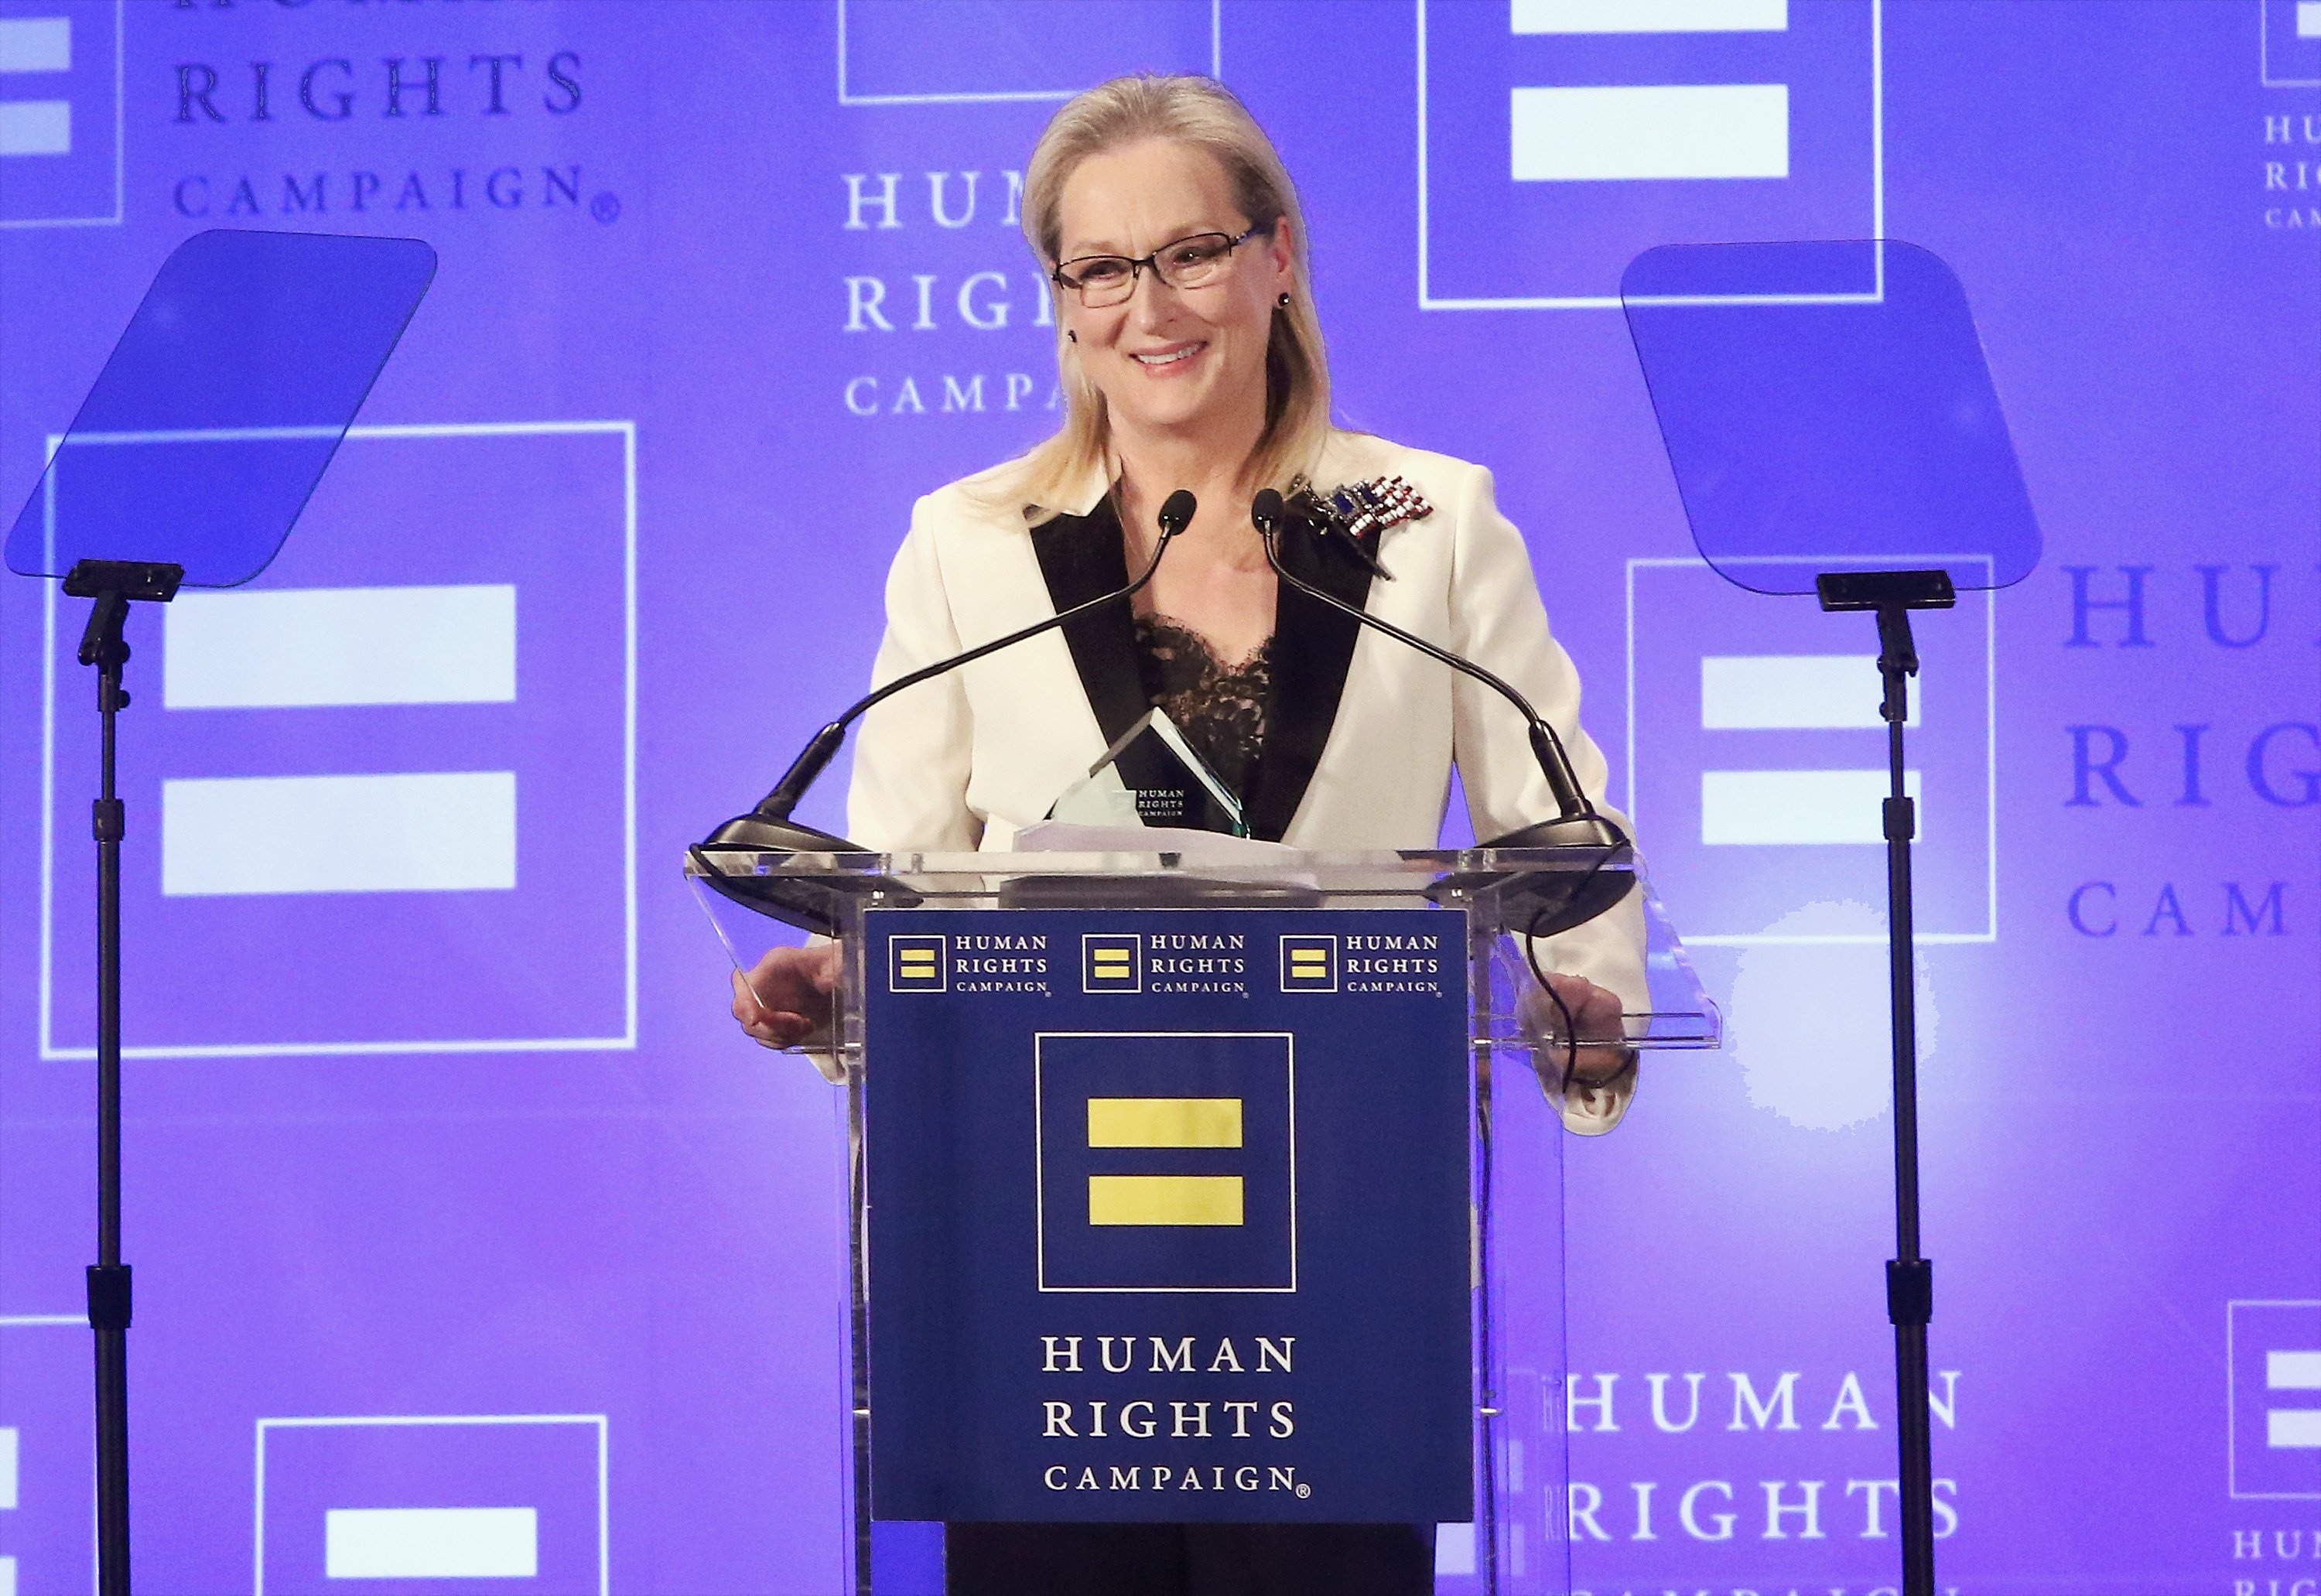 Meryl Streep attends the 2017 Human Rights Campaign Greater New York Gala at The Waldorf Astoria on February 11, 2017 in New York City